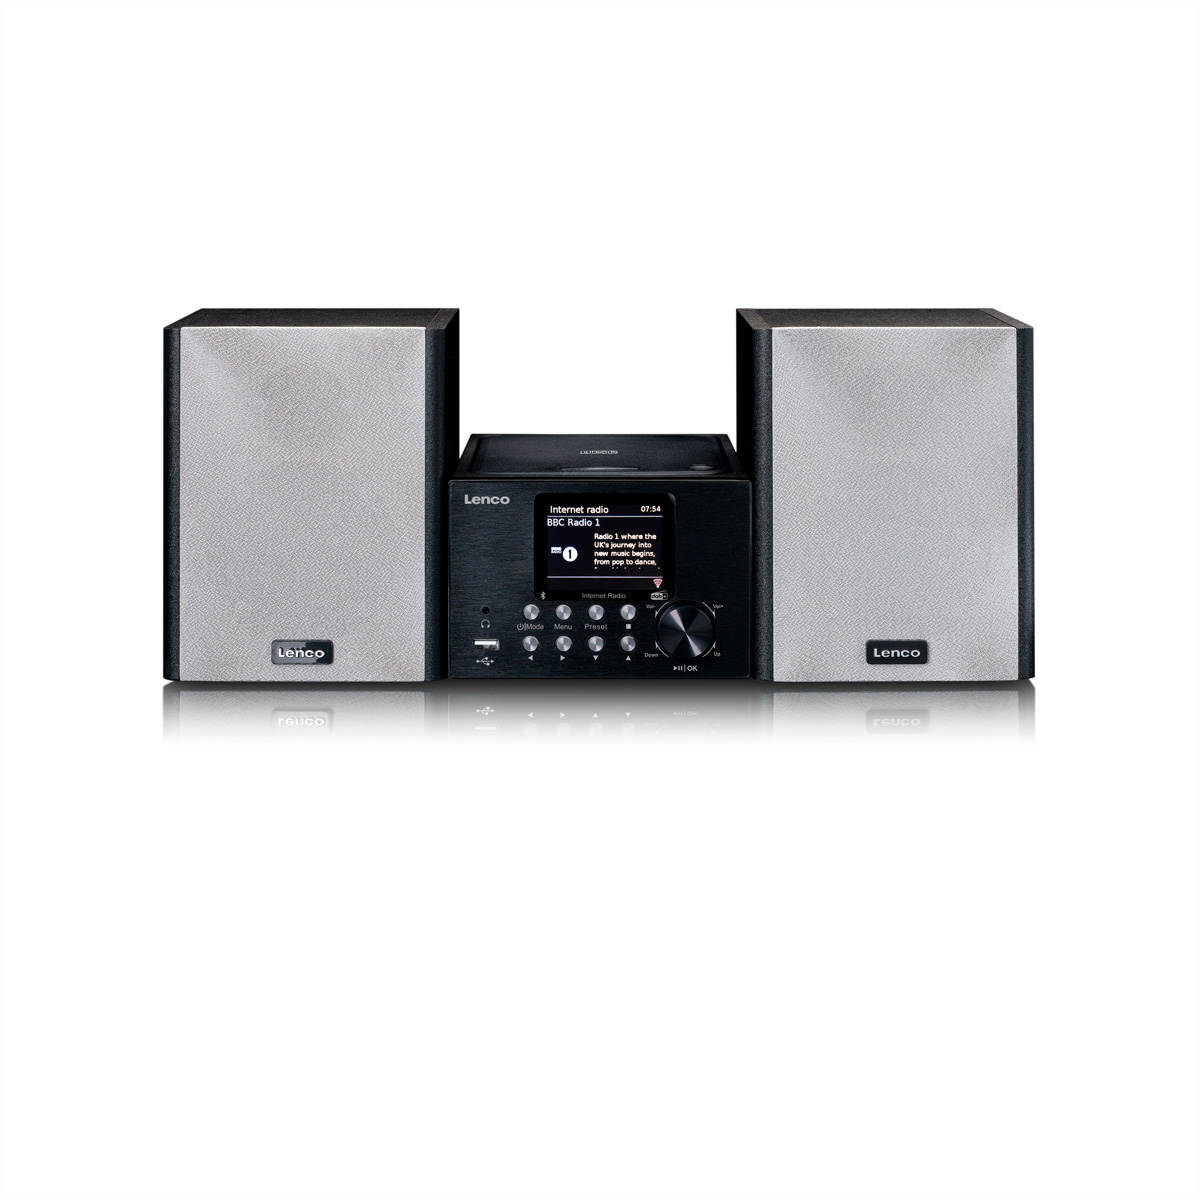 Lenco MC-250, Microset DAB+, bluetooth, CD/MP3, USB, Wecker, 2x10W, schwarz